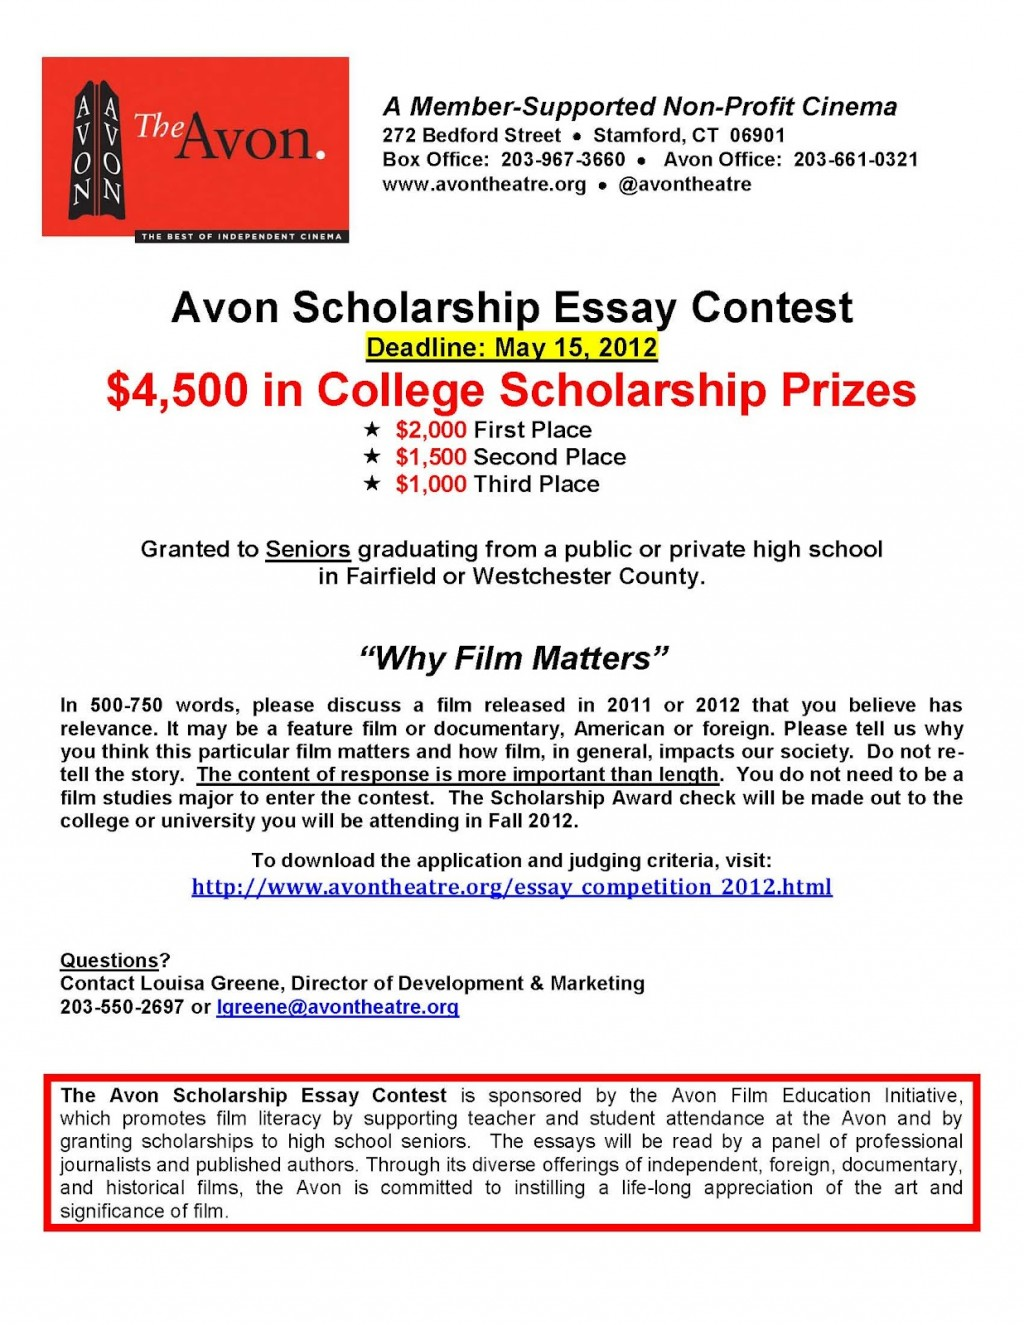 004 Essay Example No College Scholarships Scholarship Prowler Free For High School Seniors Avonscholarshipessaycontest2012 In Texas California Class Of Imposing Students Legit Large